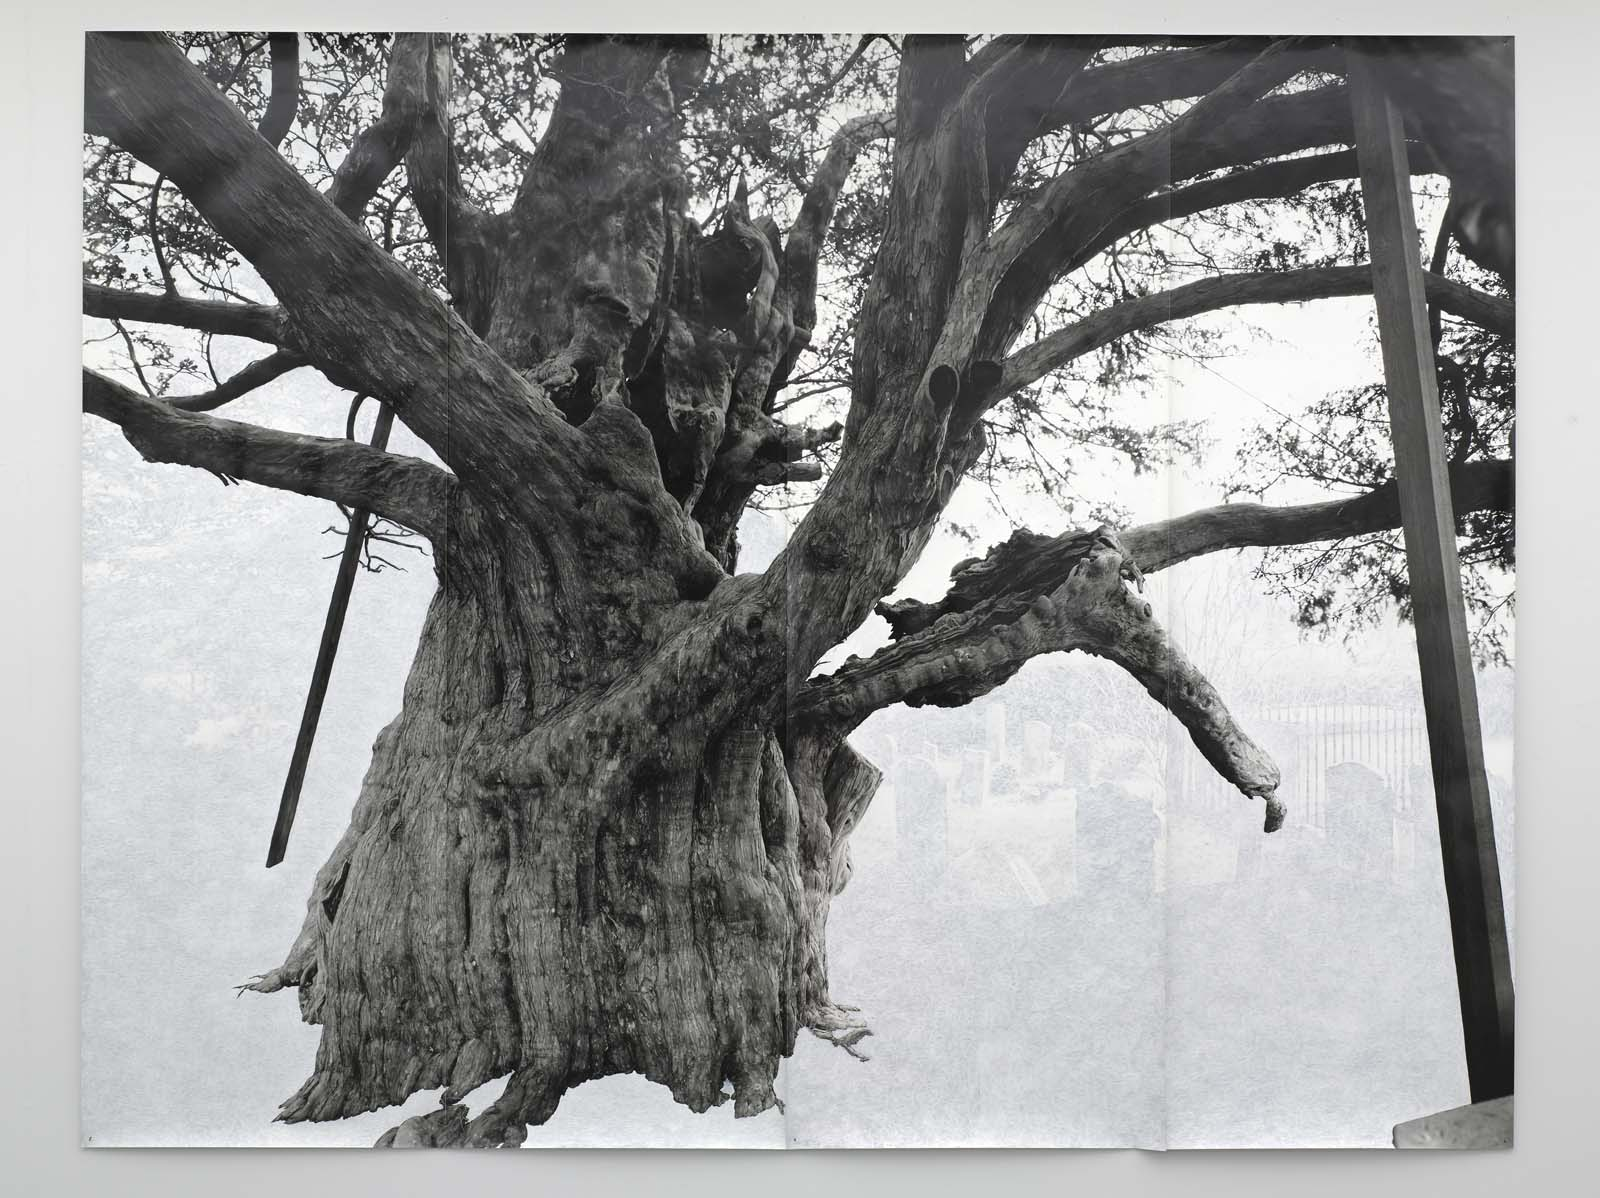 a black and white photo of a big, very old yew tree